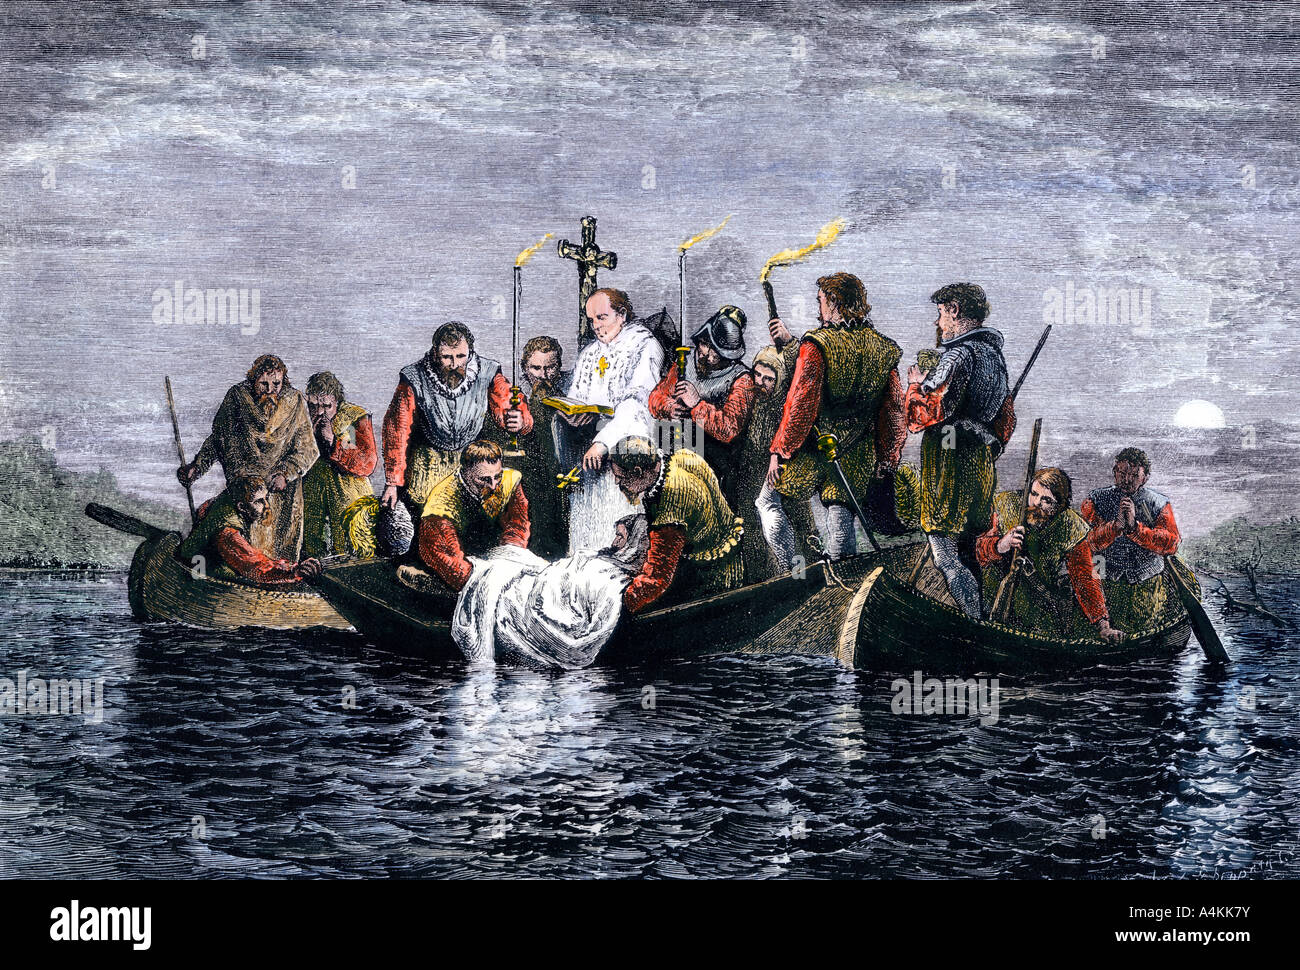 Secret burial of Hernando de Soto in the Mississippi River at night 1542. Hand-colored woodcut - Stock Image